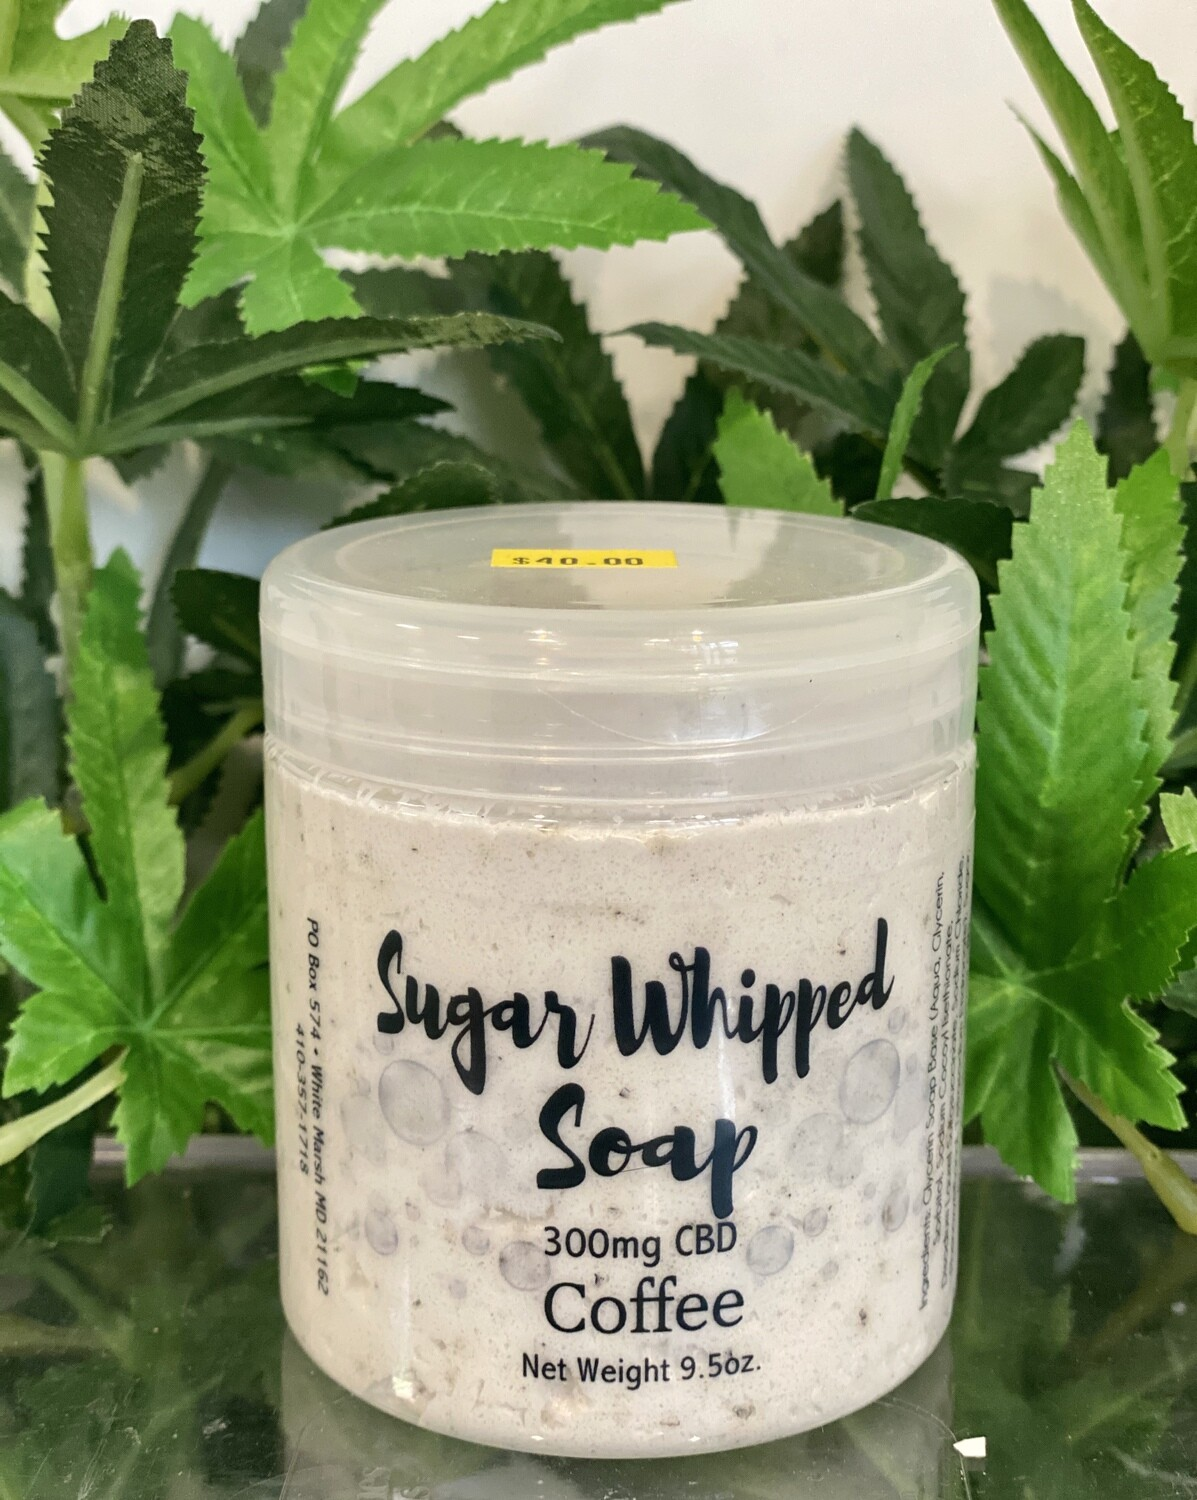 Sugar Whipped Soap - Coffee 300mg